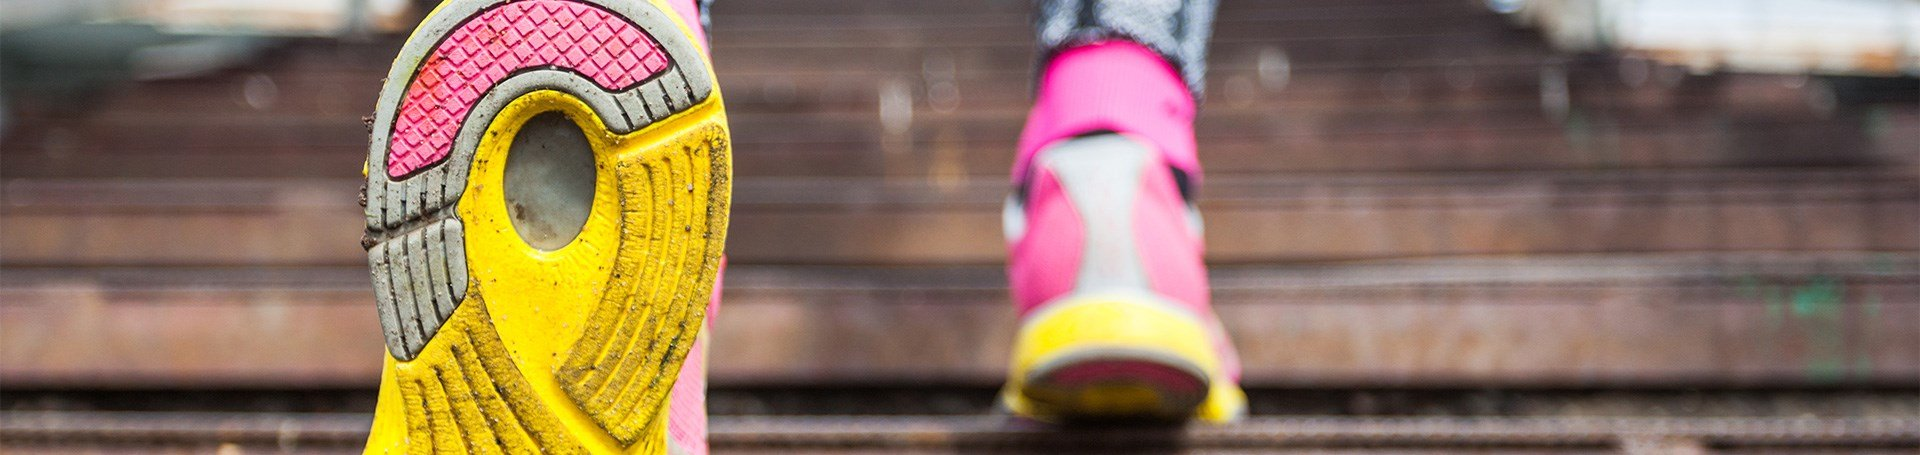 VP_VP_ALL_1920x455_1805_Shoes_Stairs_Outside_Woman.jpg